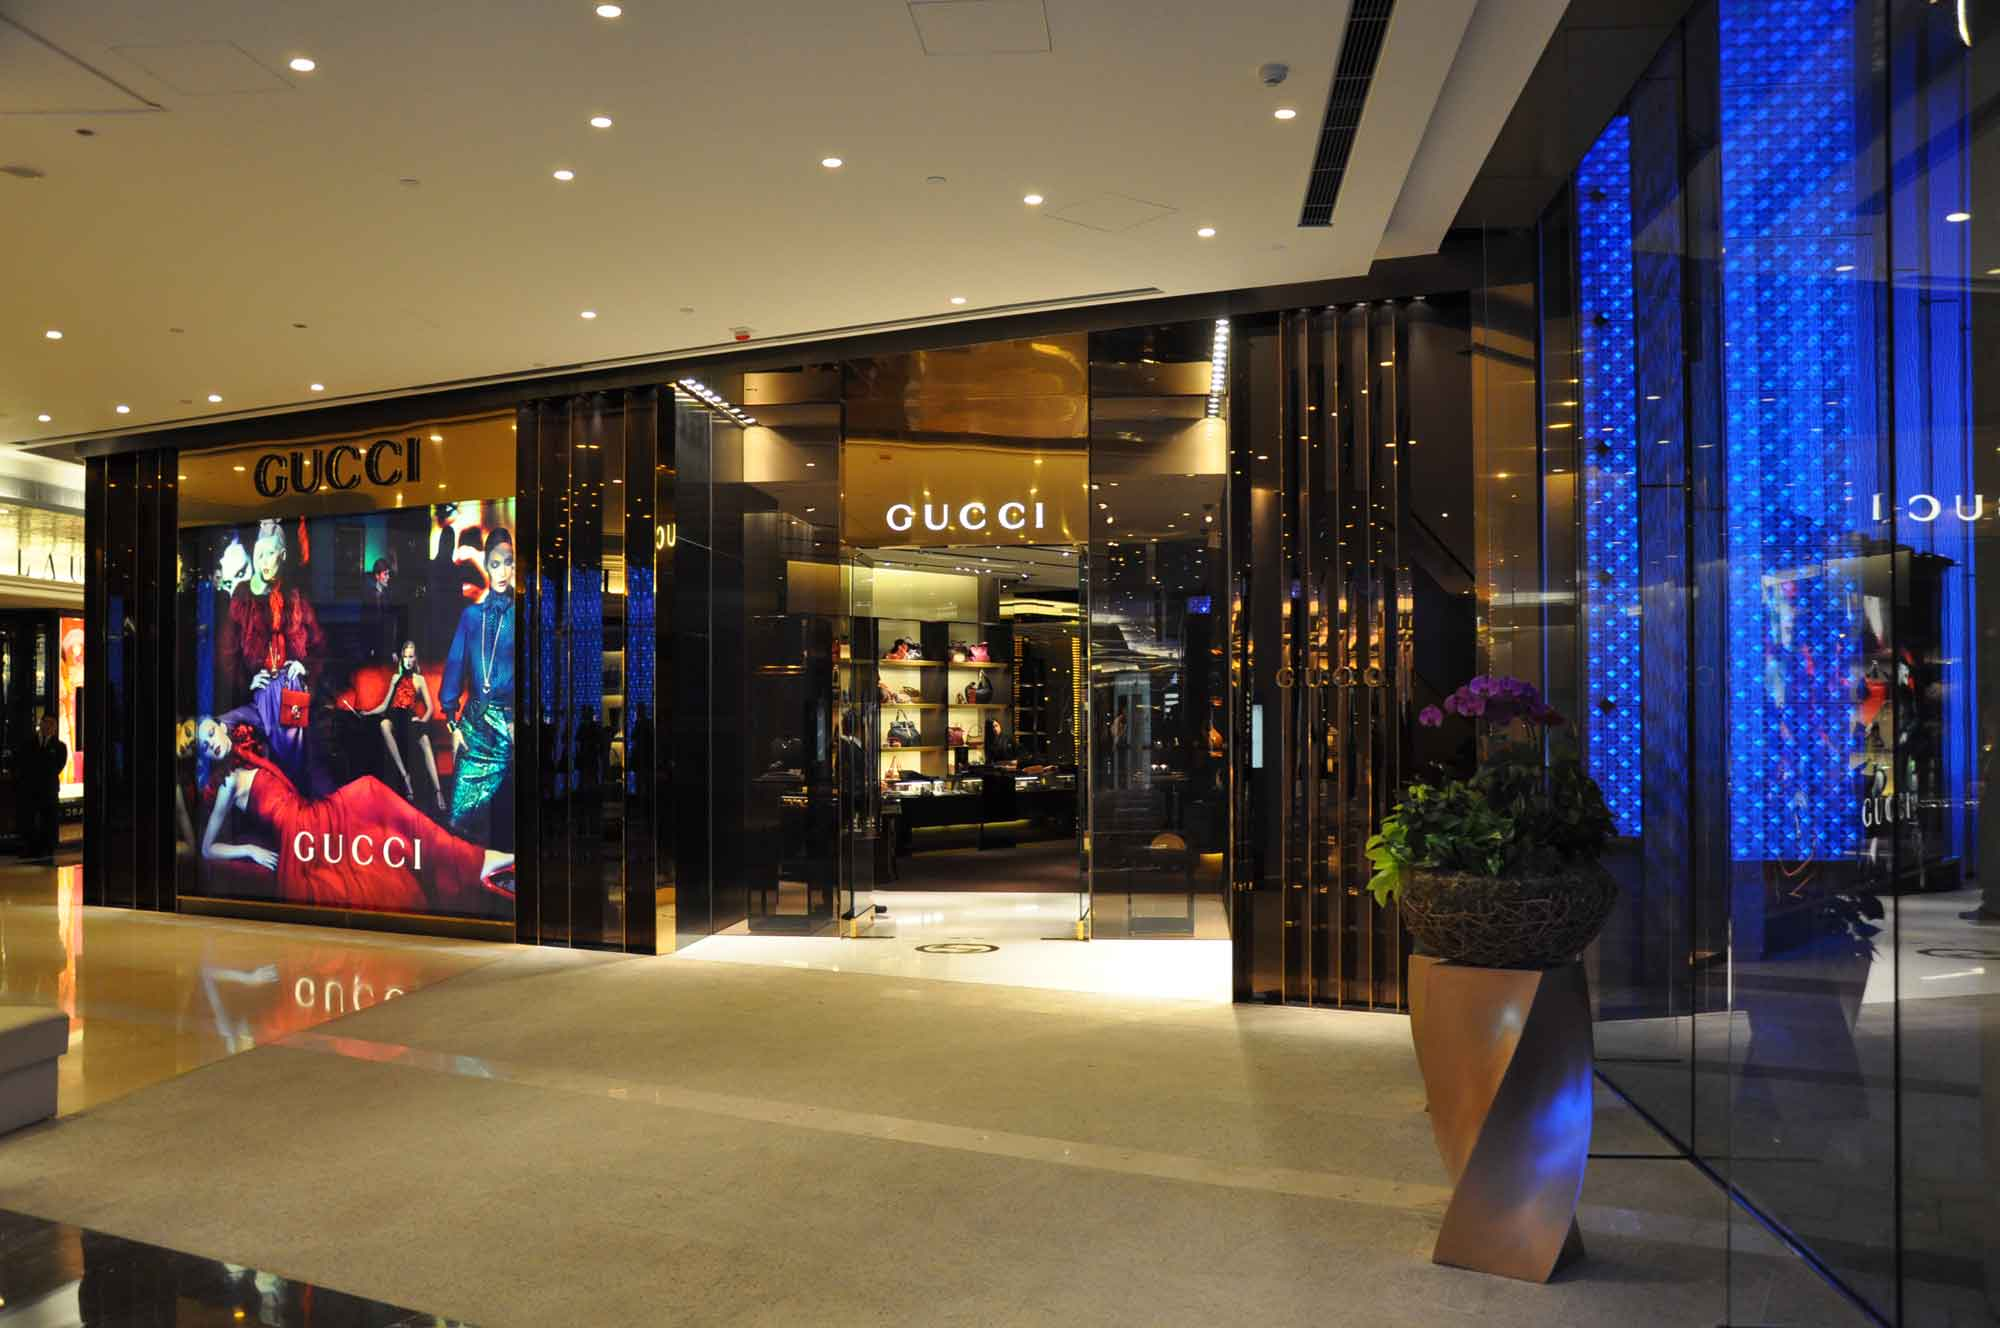 Gucci store, One Central Mall Macau